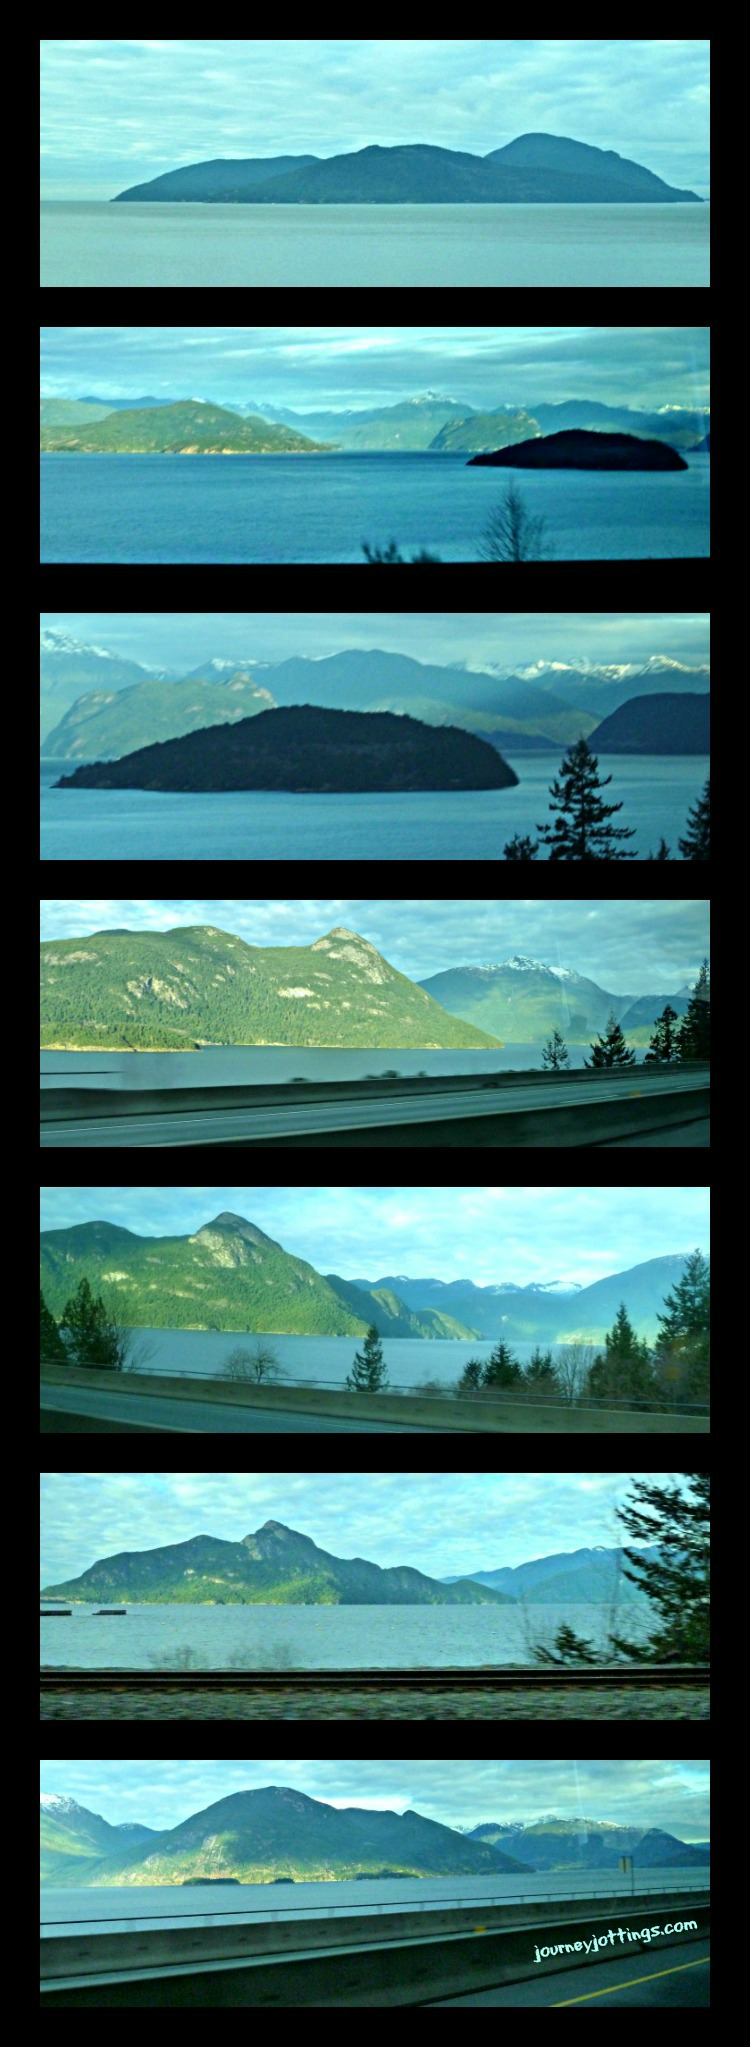 Sea to Sky Highway views from the shuttle bus window